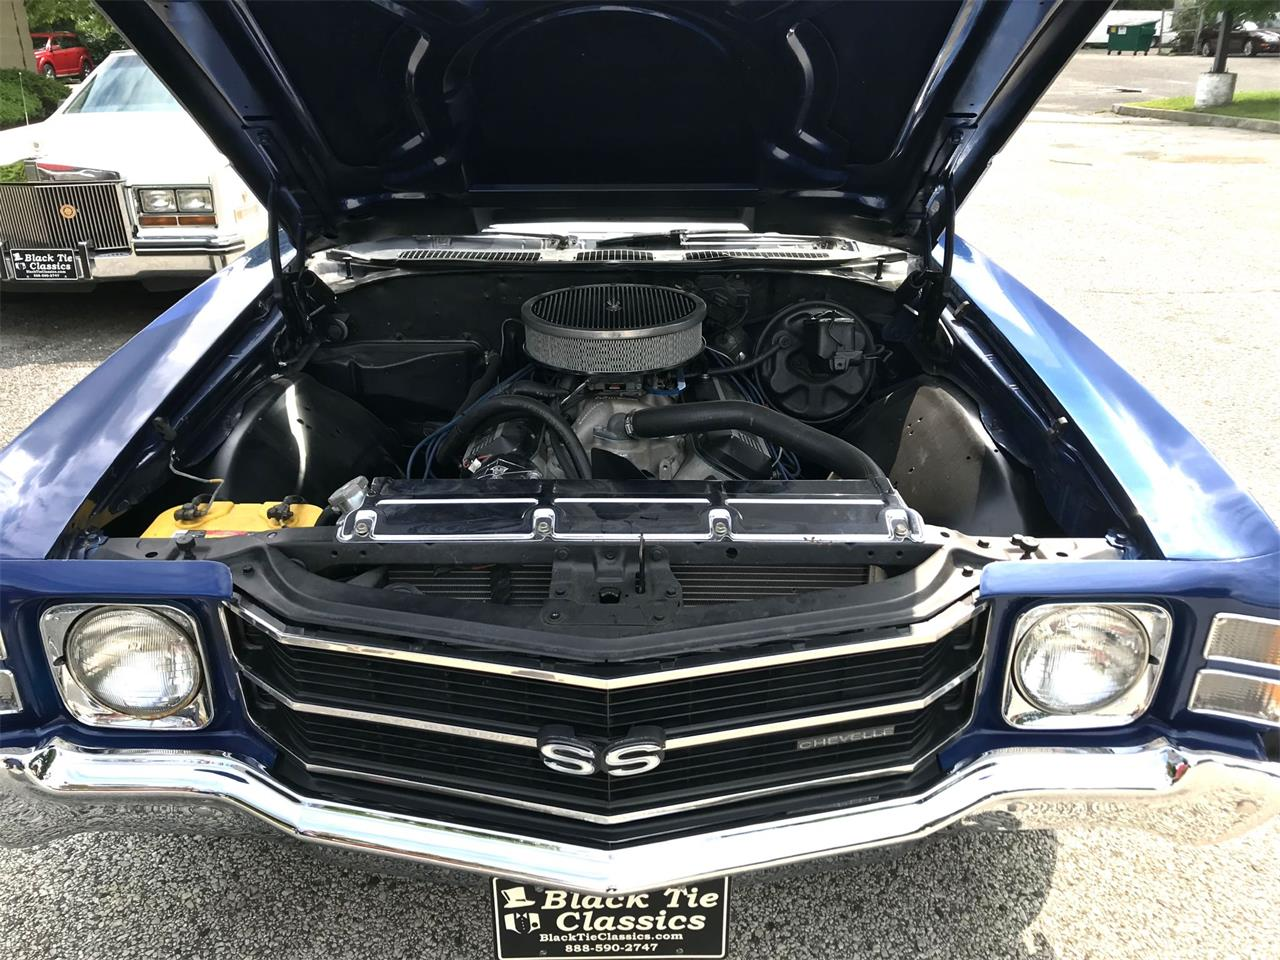 Large Picture of '71 Chevelle SS located in New Jersey Offered by Black Tie Classics - OCBN